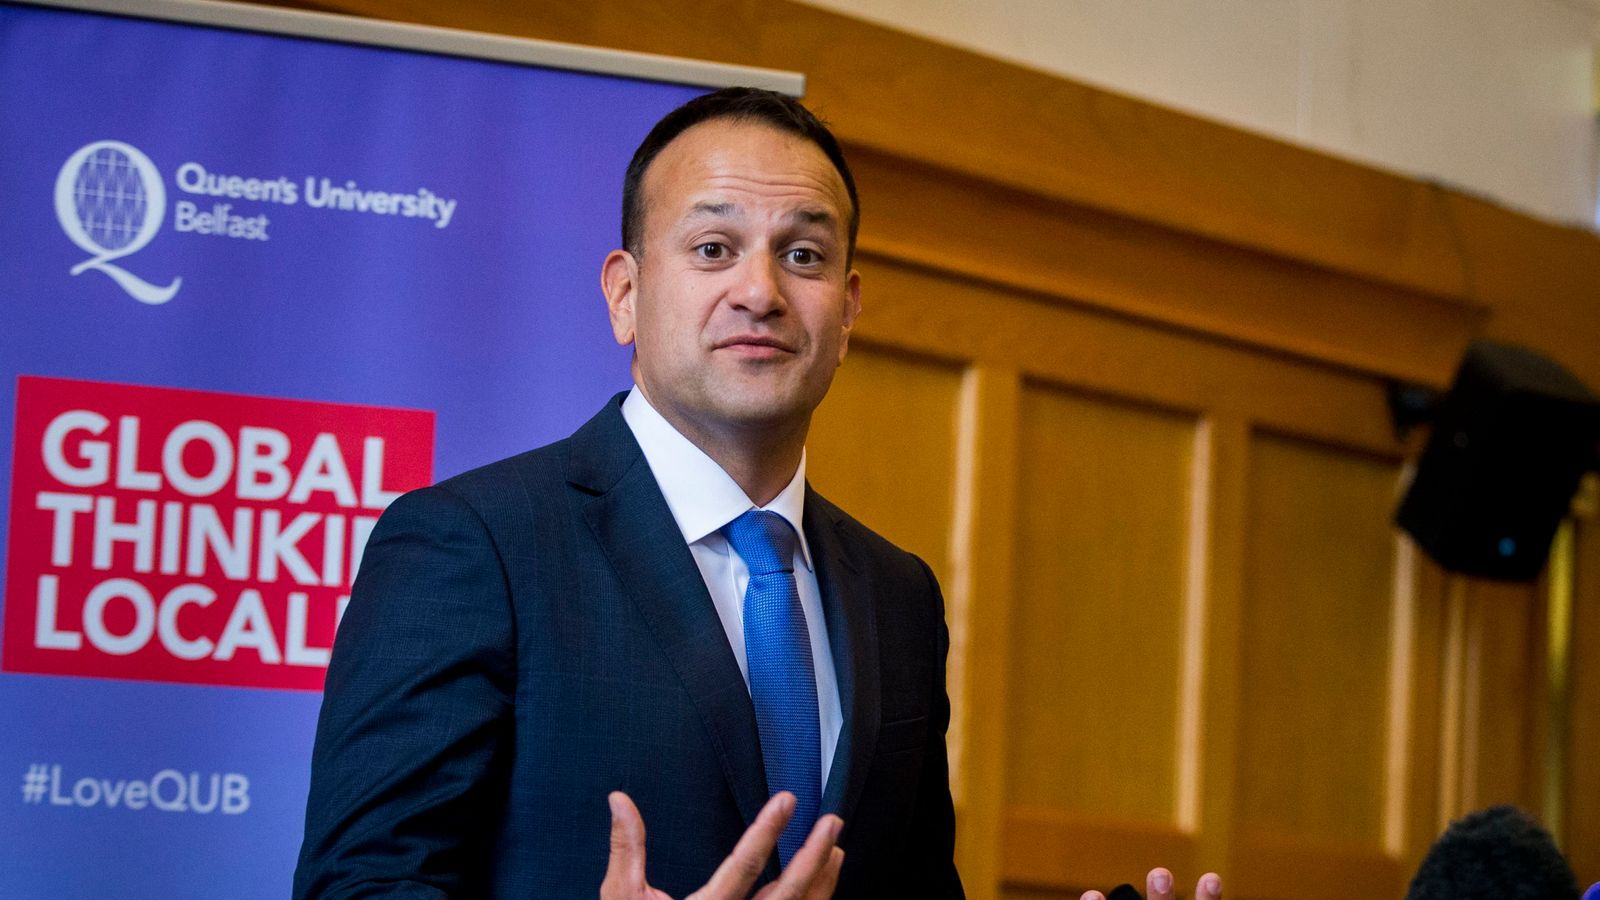 Leo Varadkar speaks during a press conference at Queen's University in Belfast